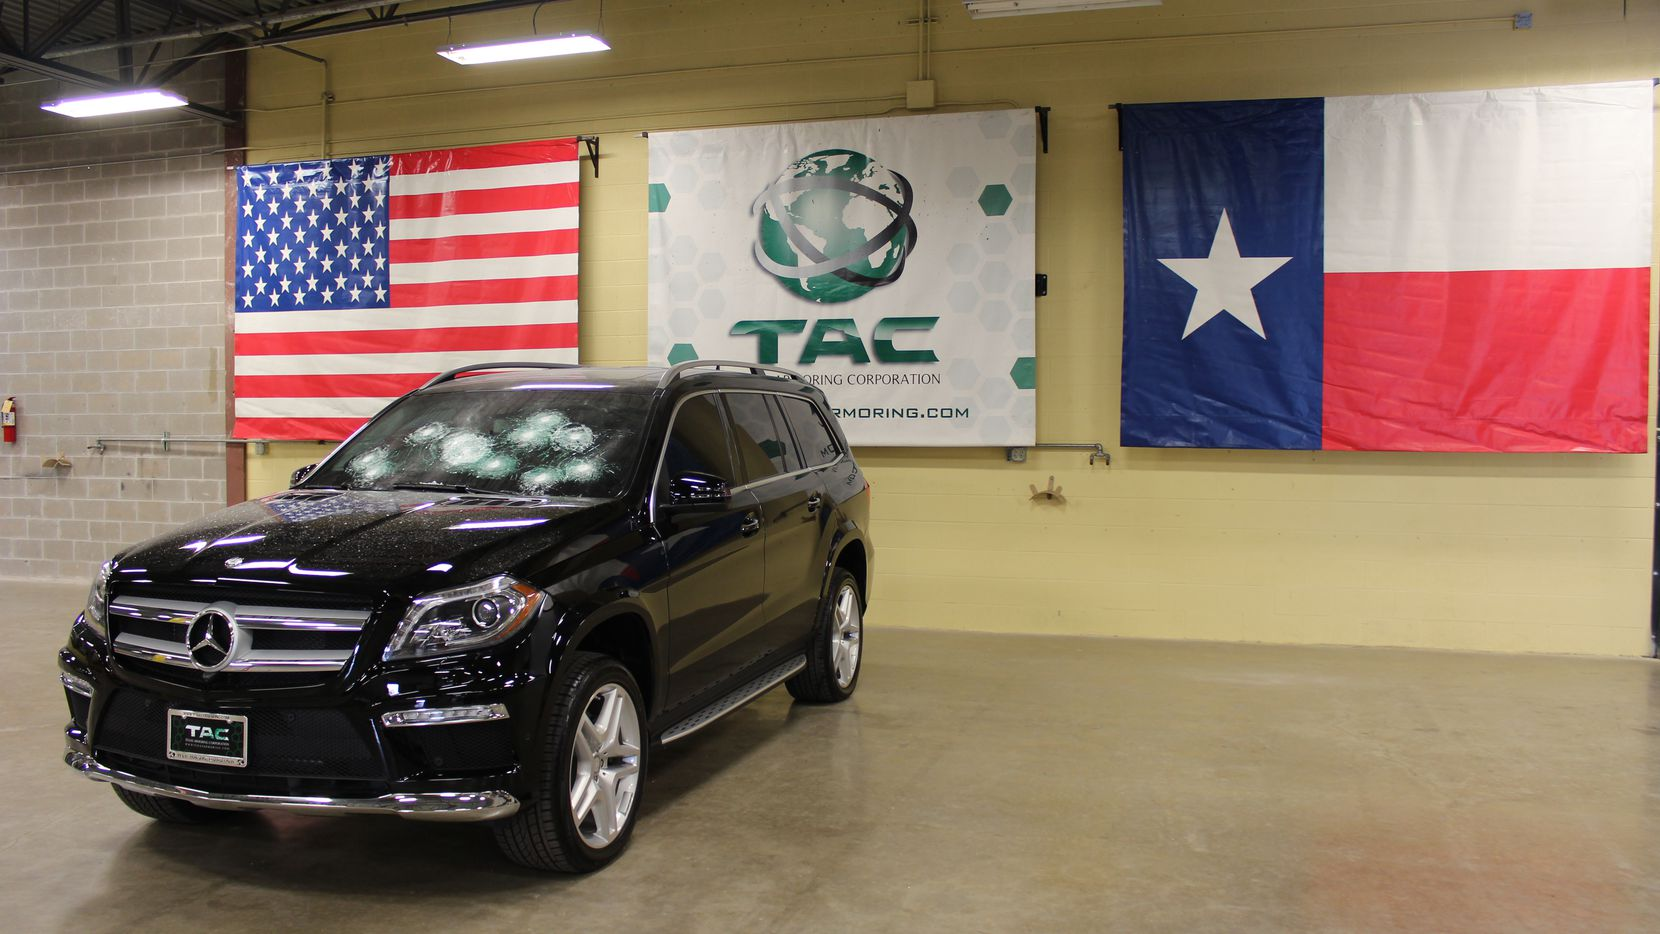 A Texas company that makes armored passenger vehicles posted a video to YouTube in 2014 that showed a Mercedes-Benz SUV repelling rounds fired from an AK-47.